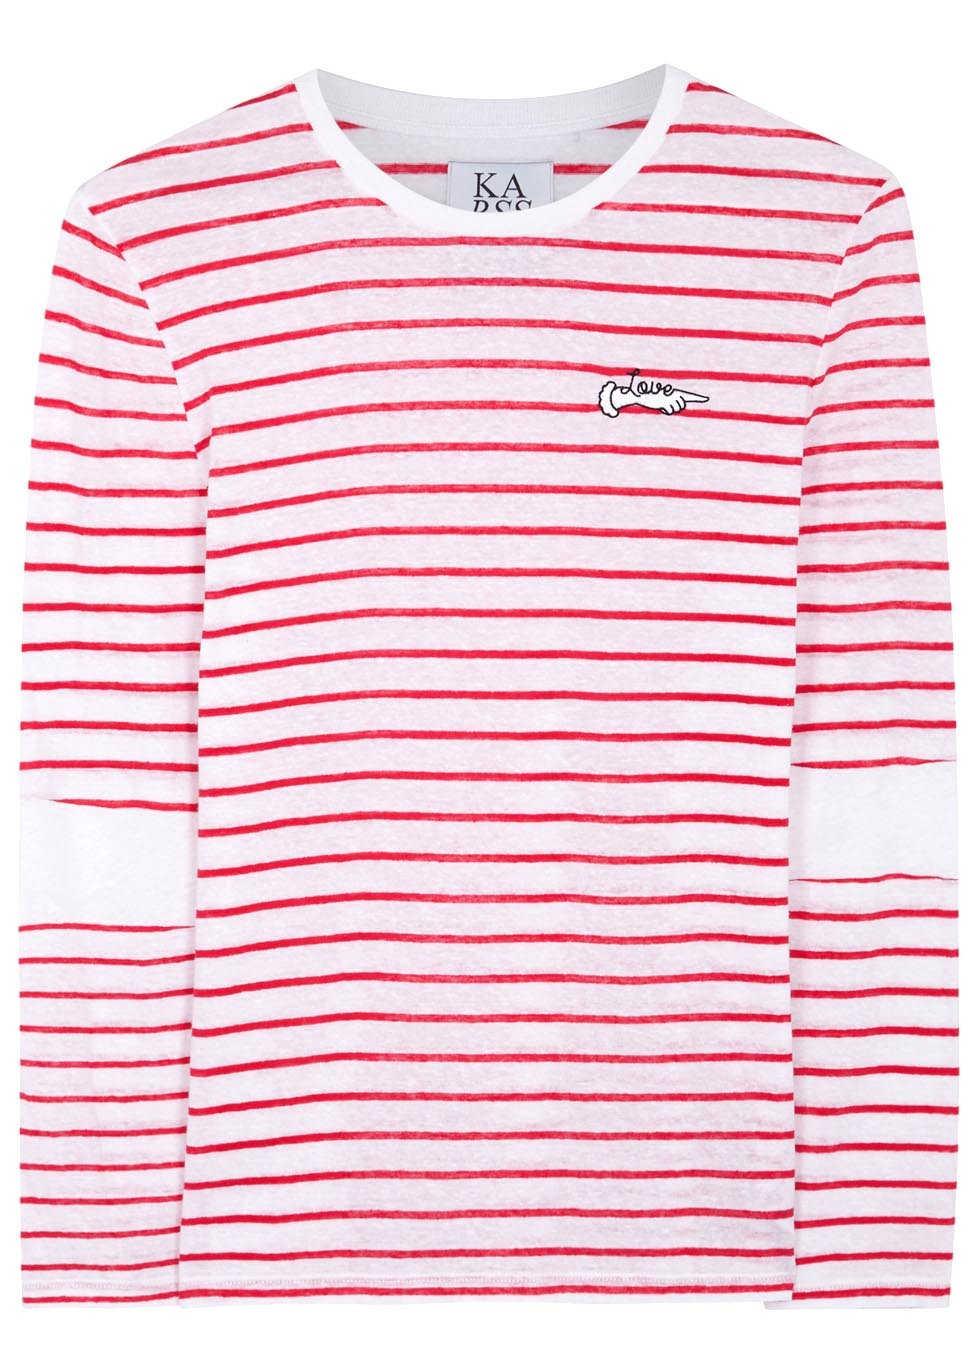 Love Striped Cotton Blend Top - pattern: horizontal stripes; style: t-shirt; predominant colour: white; secondary colour: hot pink; occasions: casual; length: standard; fibres: cotton - mix; fit: body skimming; neckline: crew; sleeve length: long sleeve; sleeve style: standard; texture group: jersey - clingy; pattern type: fabric; multicoloured: multicoloured; season: s/s 2016; wardrobe: highlight